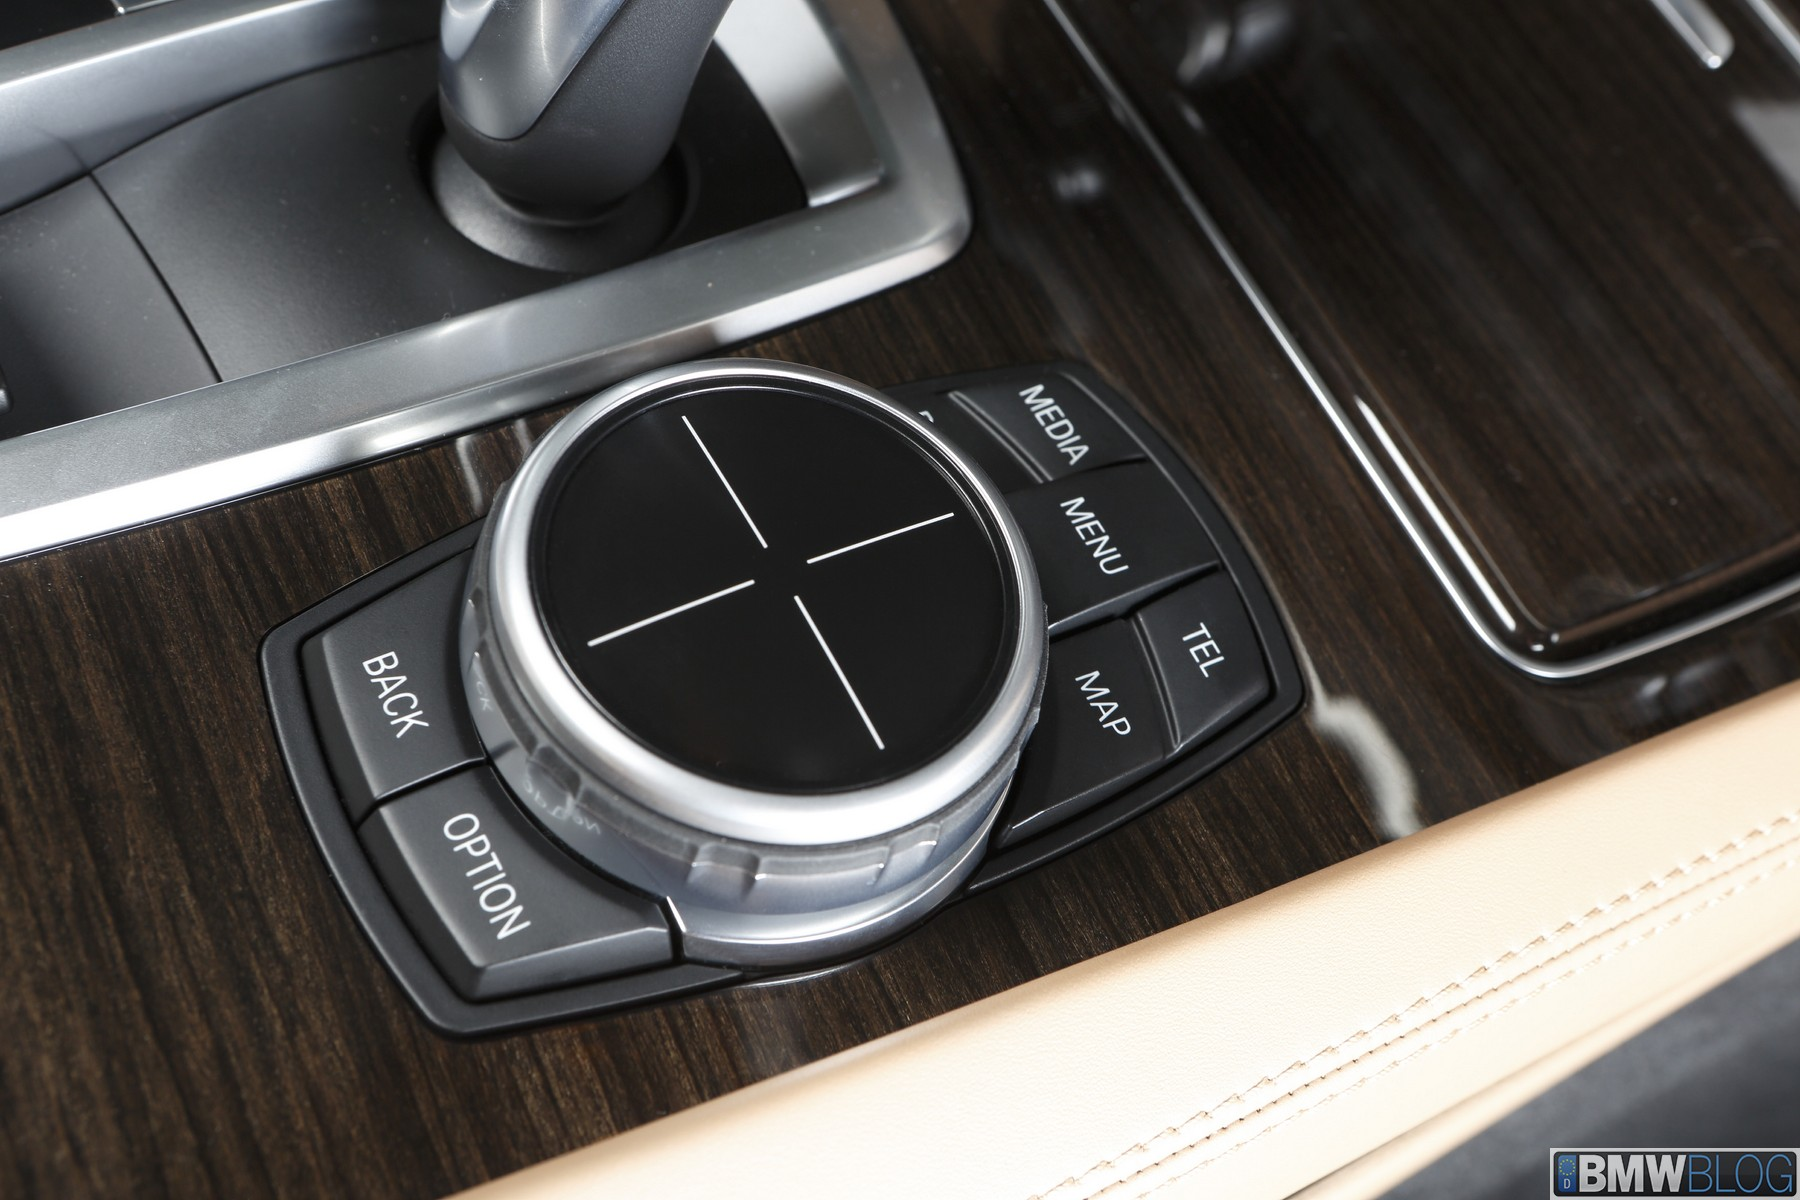 BMW iDrive Touch Controller image